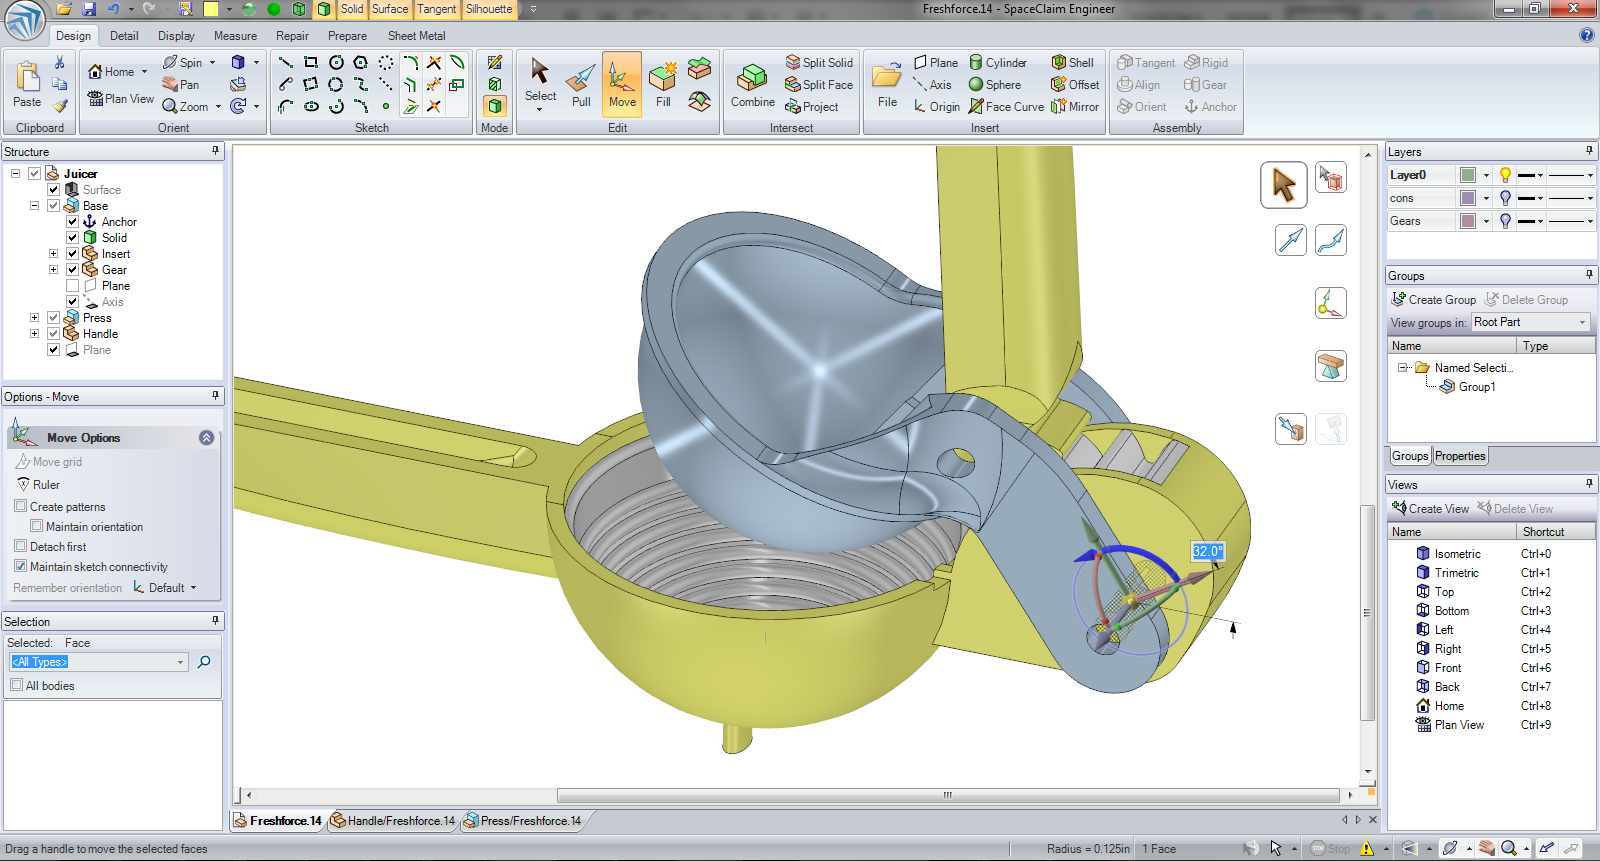 Spaceclaim engineer Free 3d cad software